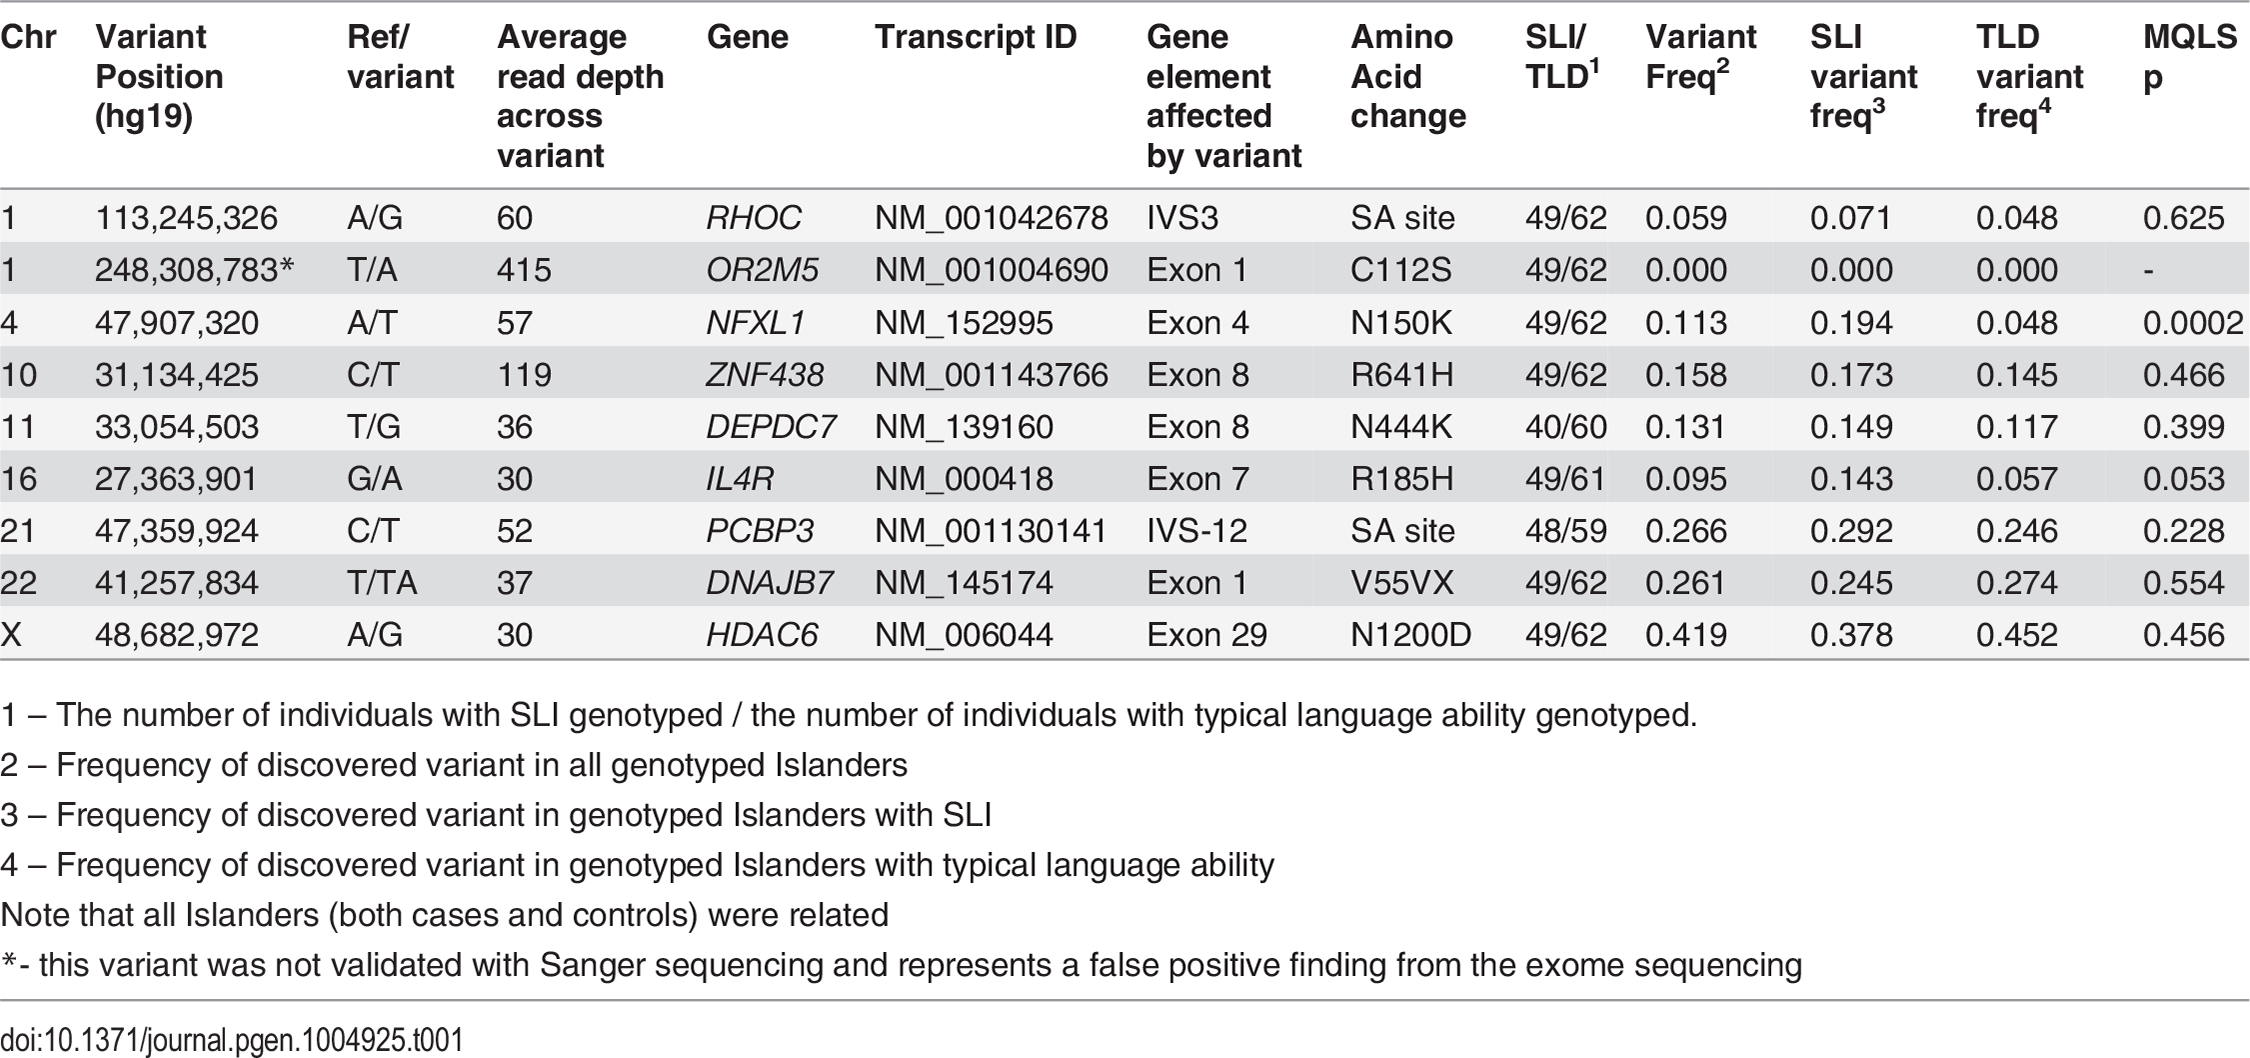 Association of novel nonsynonymous or canonical splice-site variants in 111 individuals from the Robinson Crusoe validation cohort.